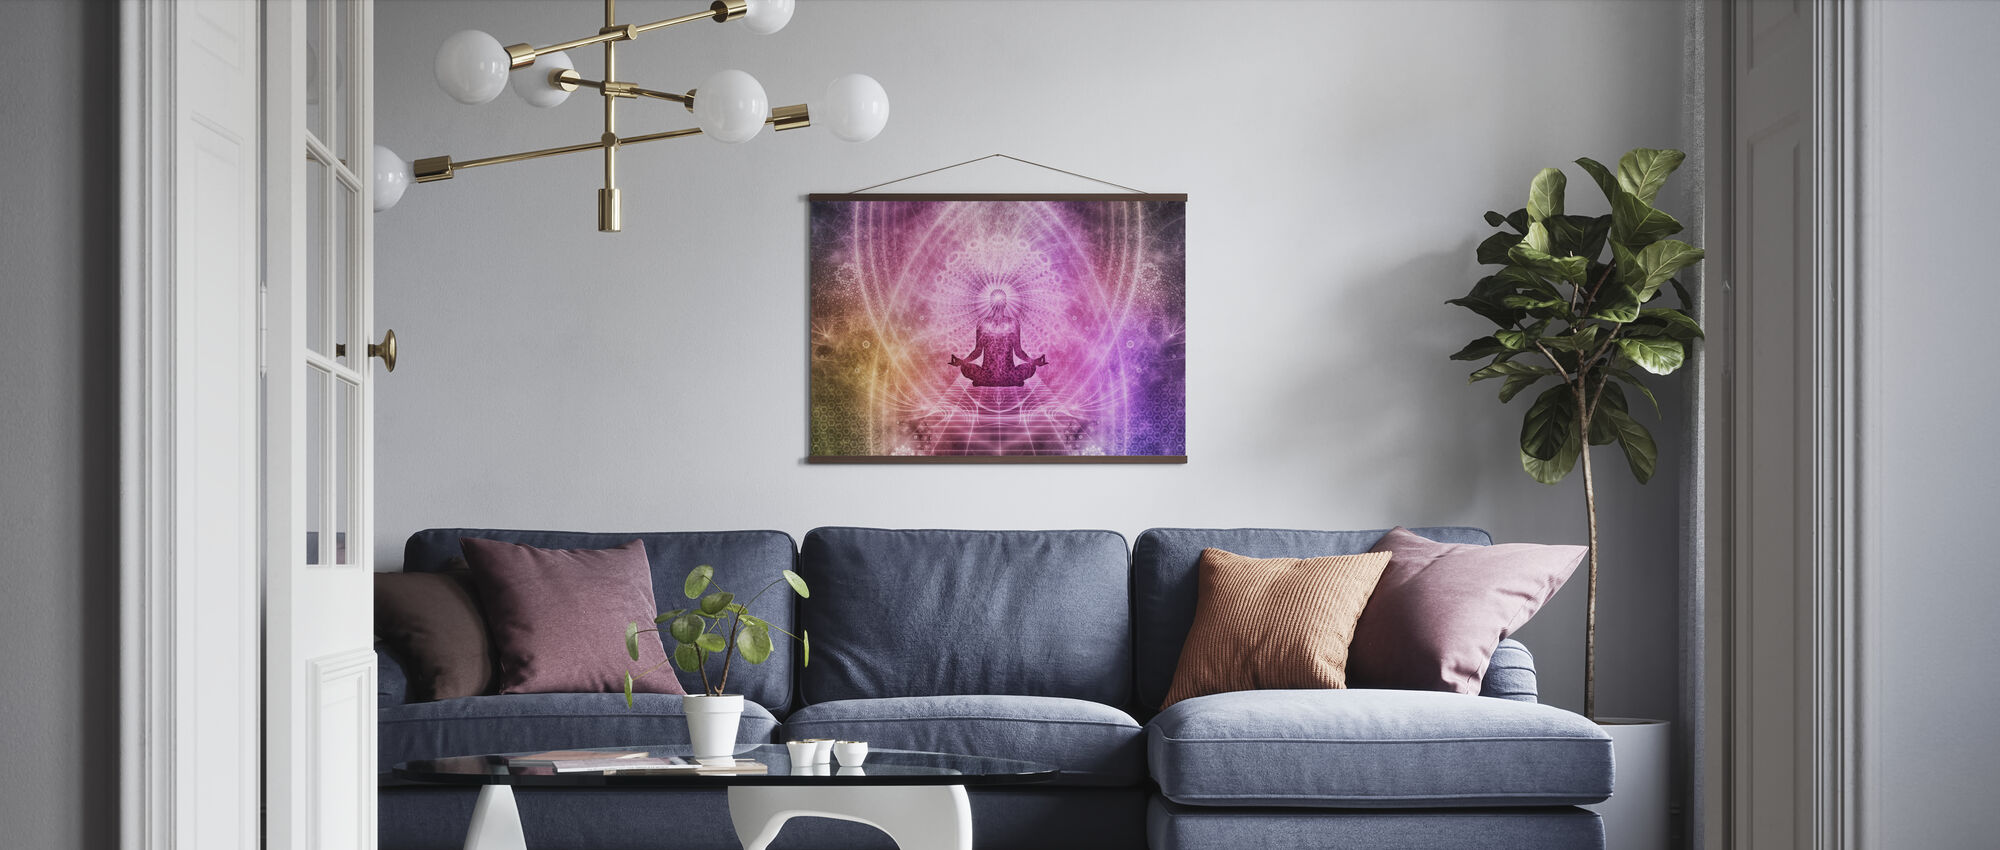 Spiritual Meditation - Poster - Living Room